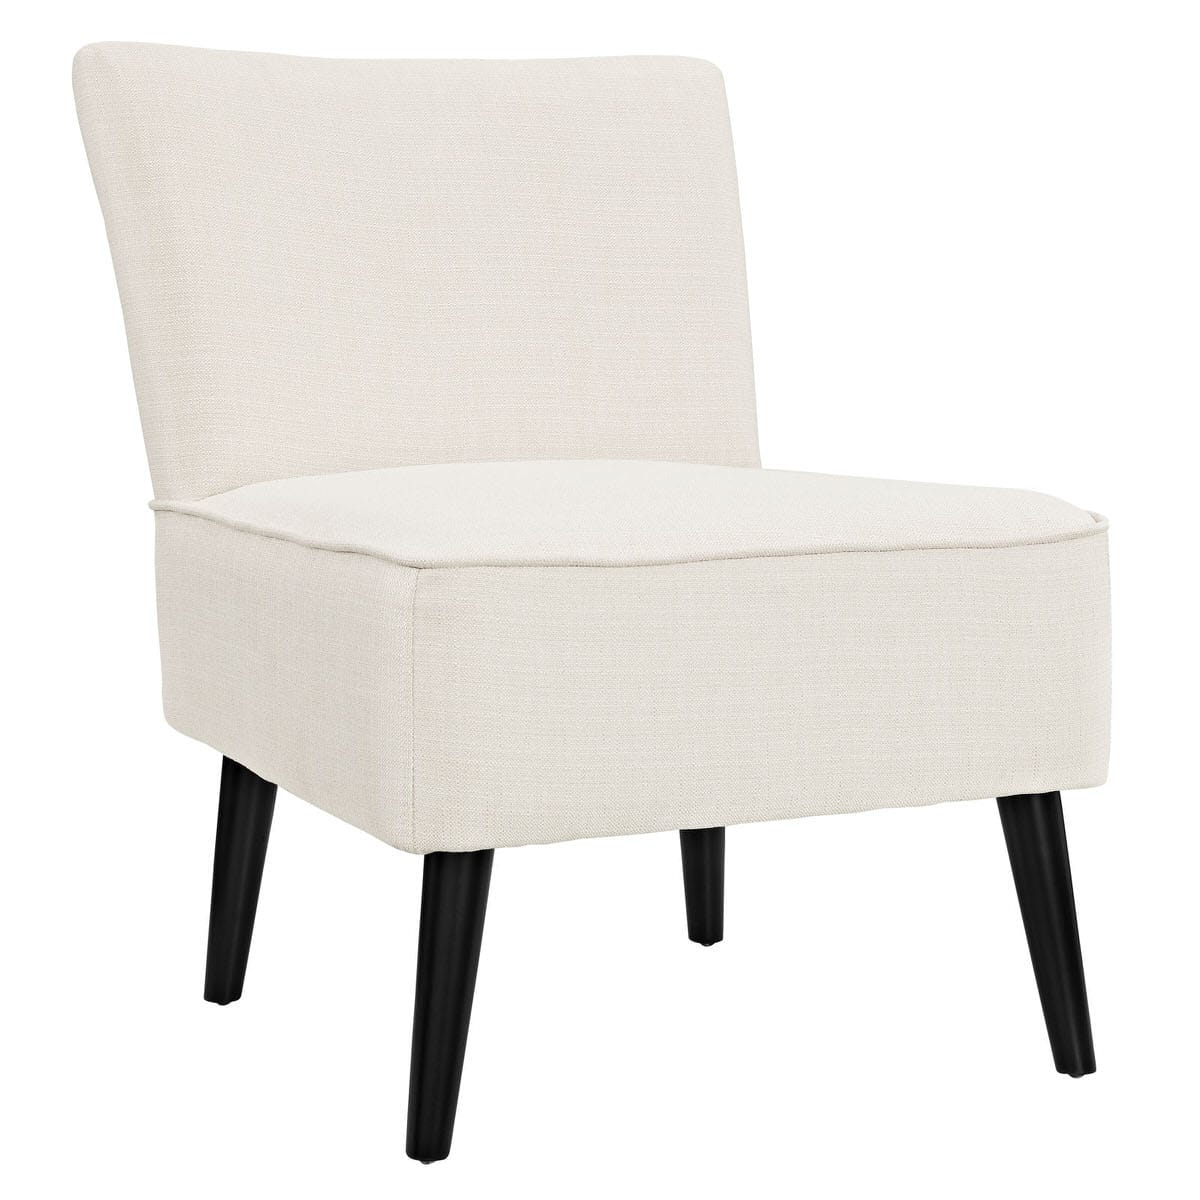 Tremendous Reef Upholstered Fabric Side Chair Beige By Modern Living Gamerscity Chair Design For Home Gamerscityorg